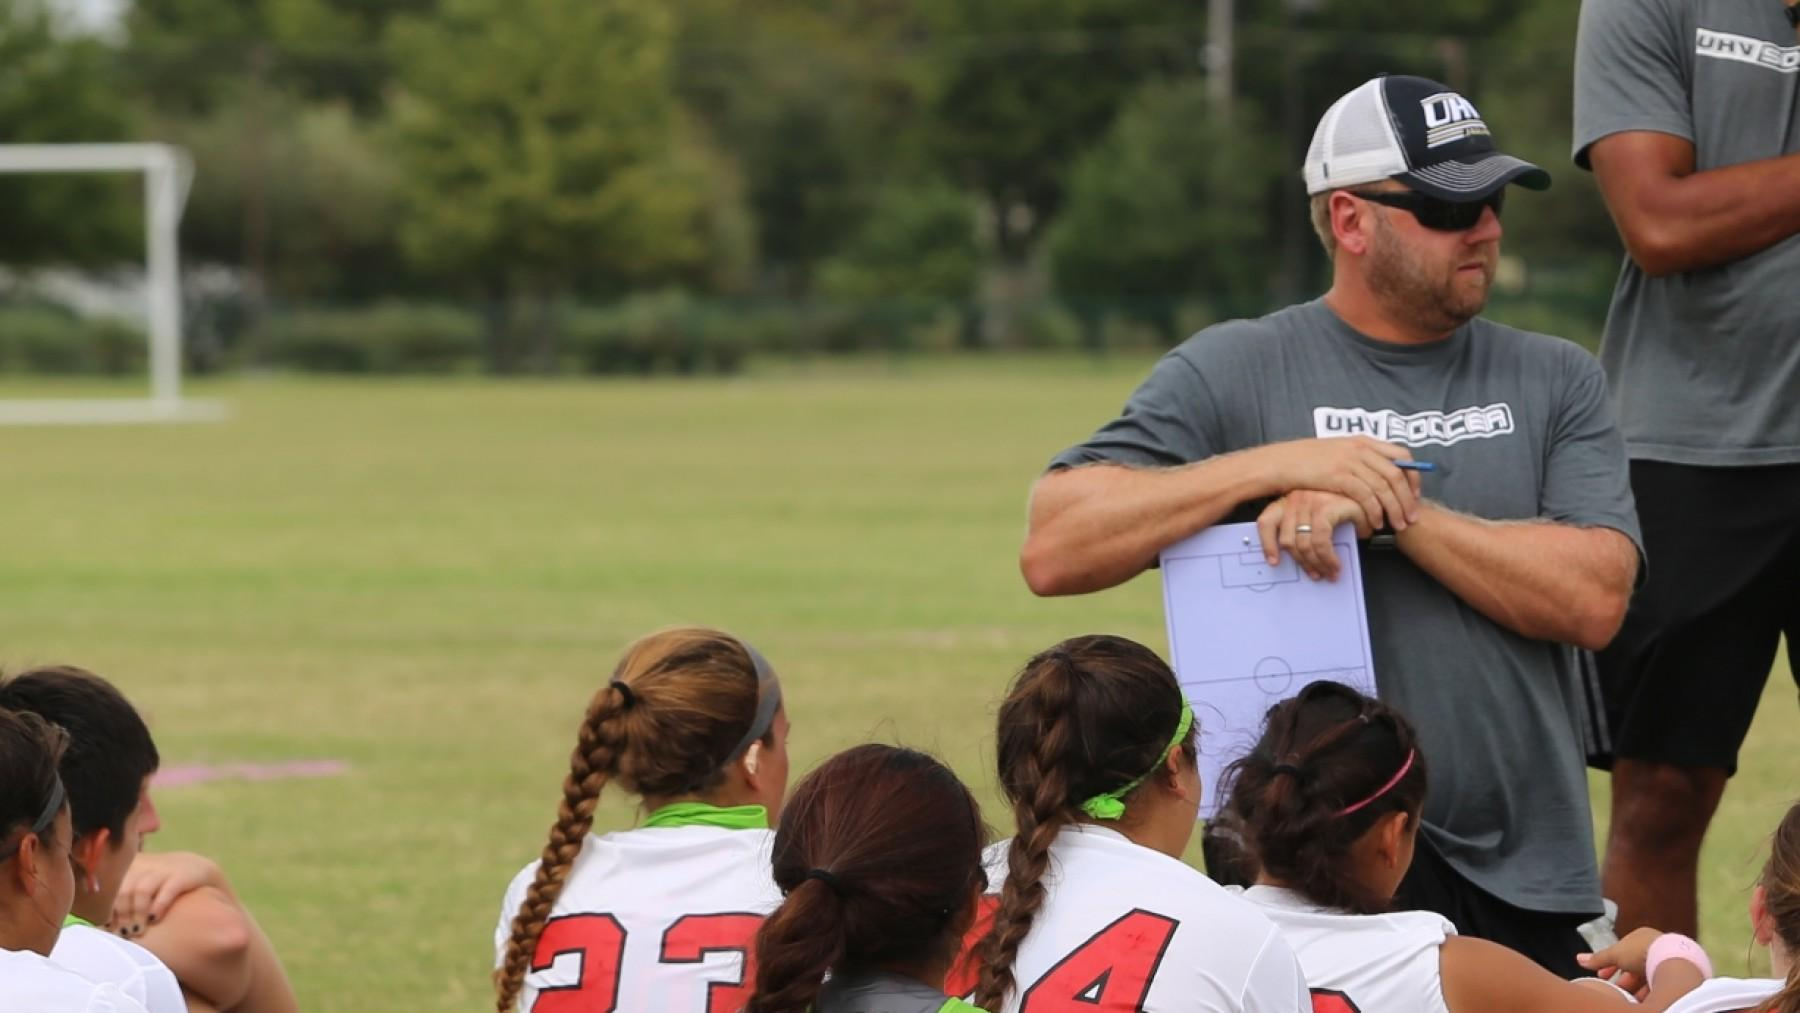 Rigby named assistant AD at UHV